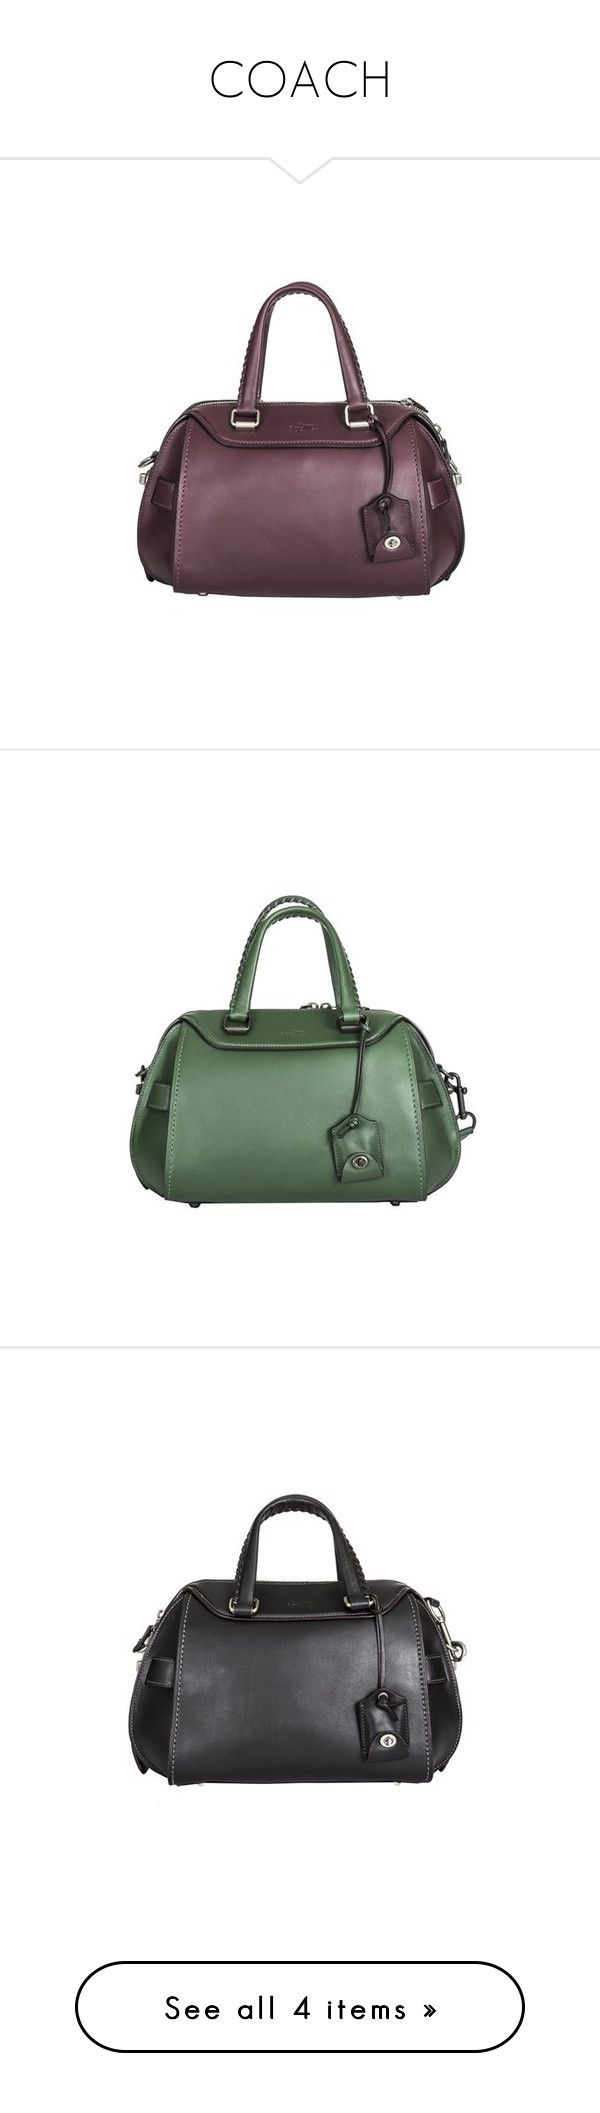 """COACH"" by dlrluxuryboutique ❤ liked on Polyvore featuring bags, handbags, shoulder bags, burgundy purse, coach handbags, coach shoulder bag, purple shoulder bag, purple leather handbag, green and real leather purses"